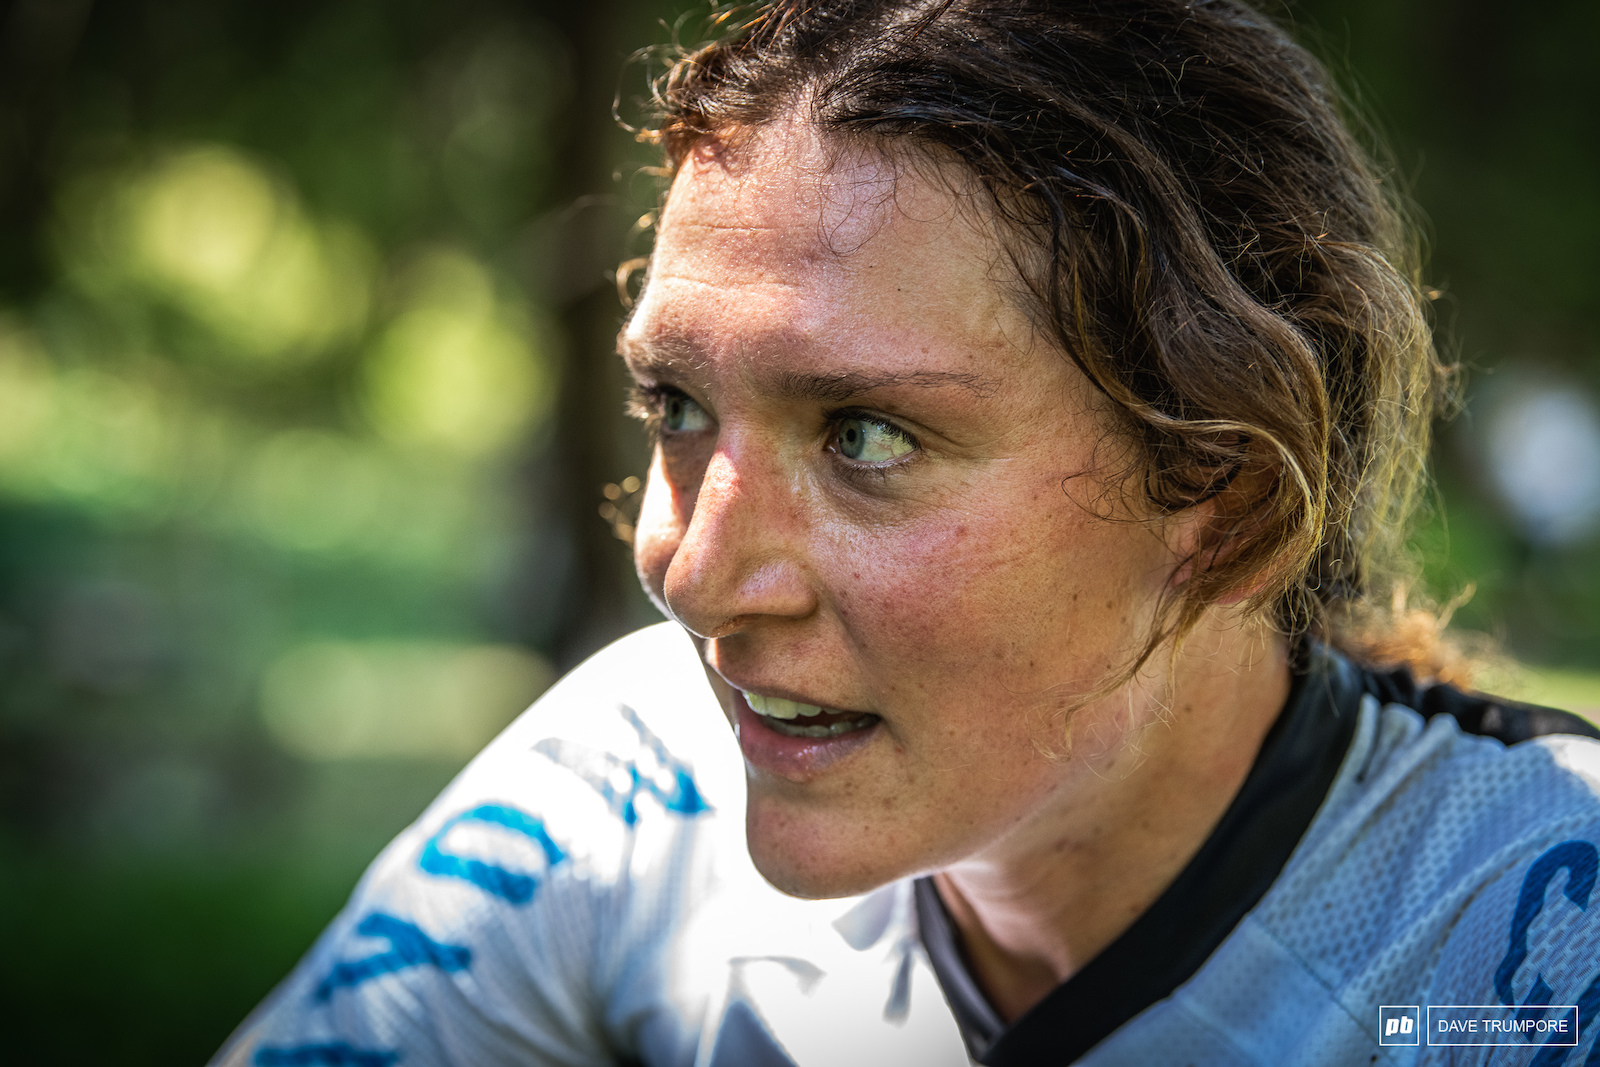 Ines Thoma had a great start to her day before a puncture would put her out of the running.